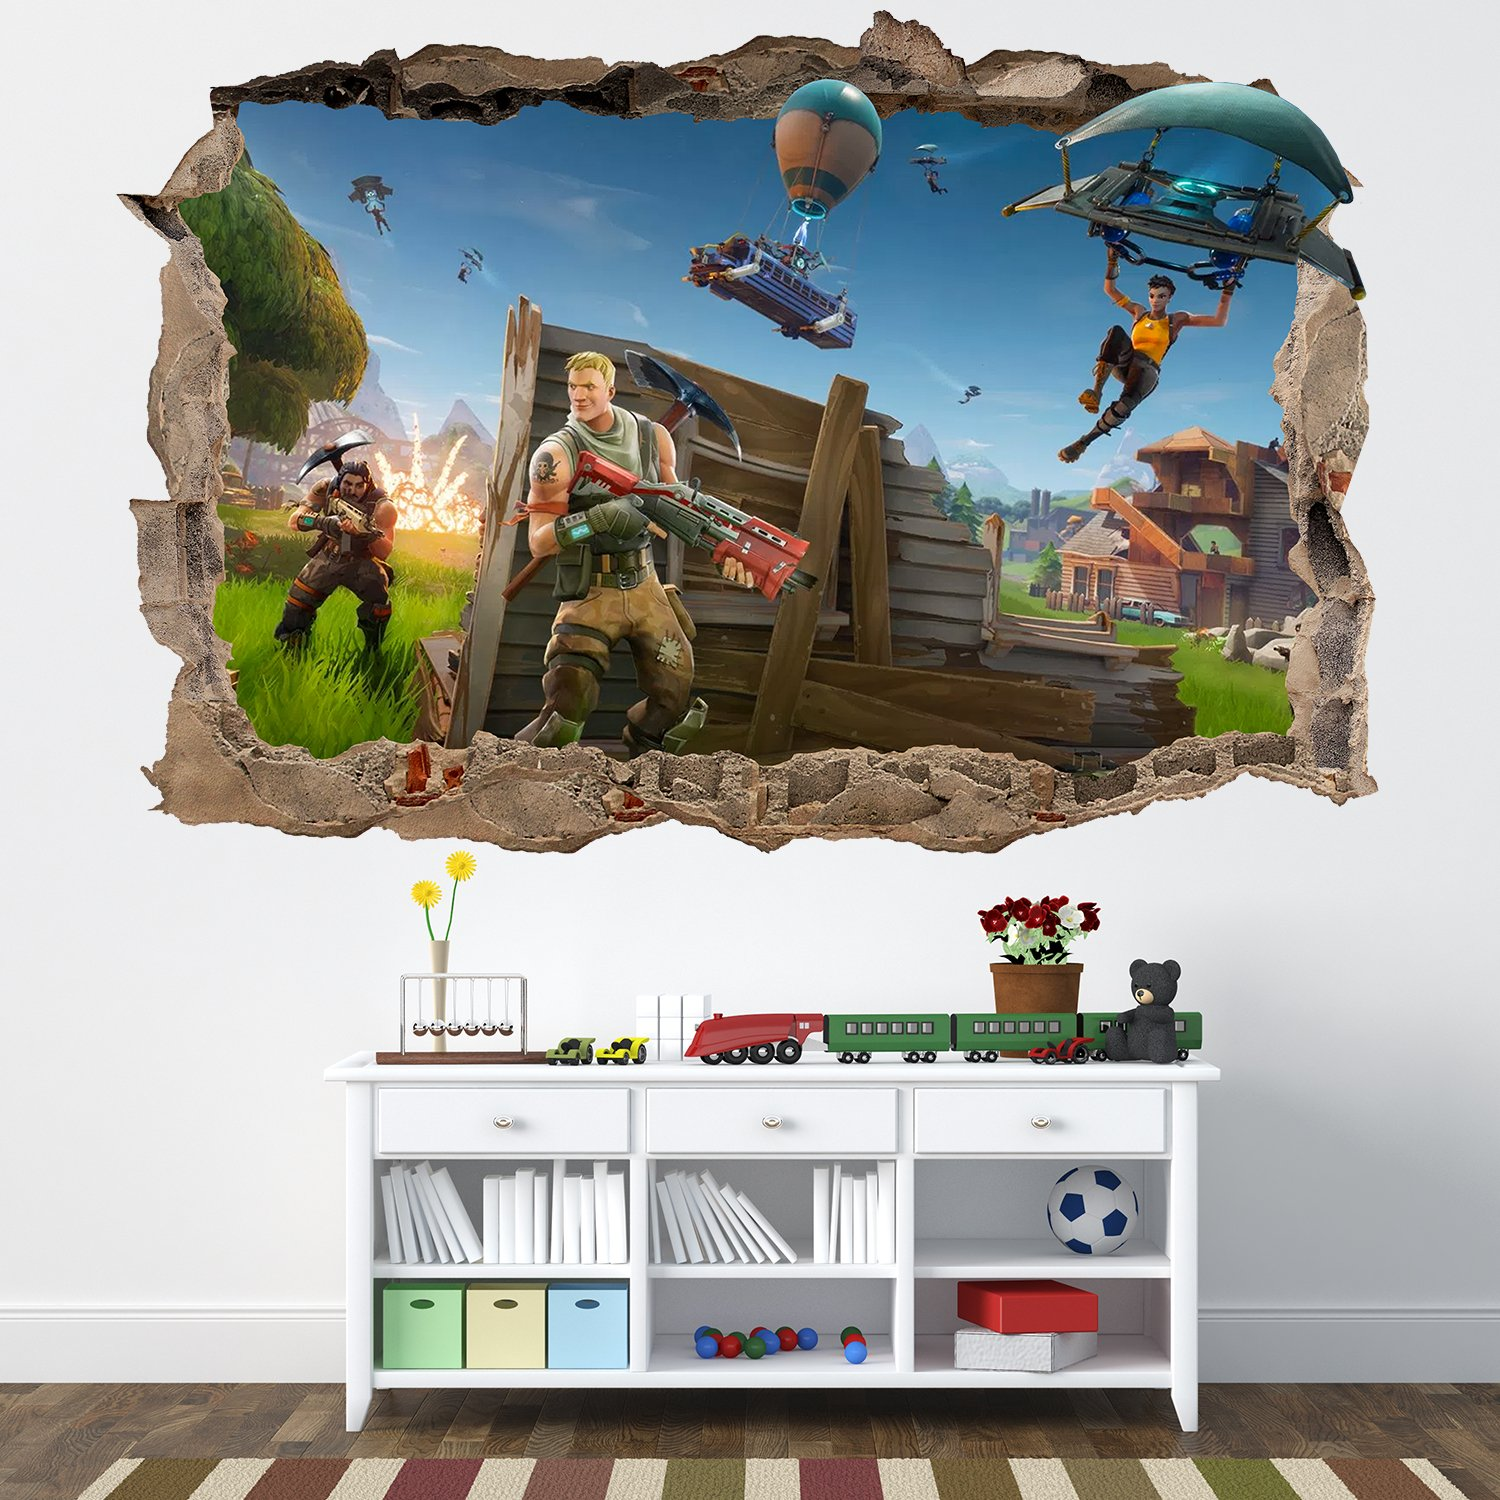 Vinilo Decorativo de Pared de Fornite para Pared, extraíble ...